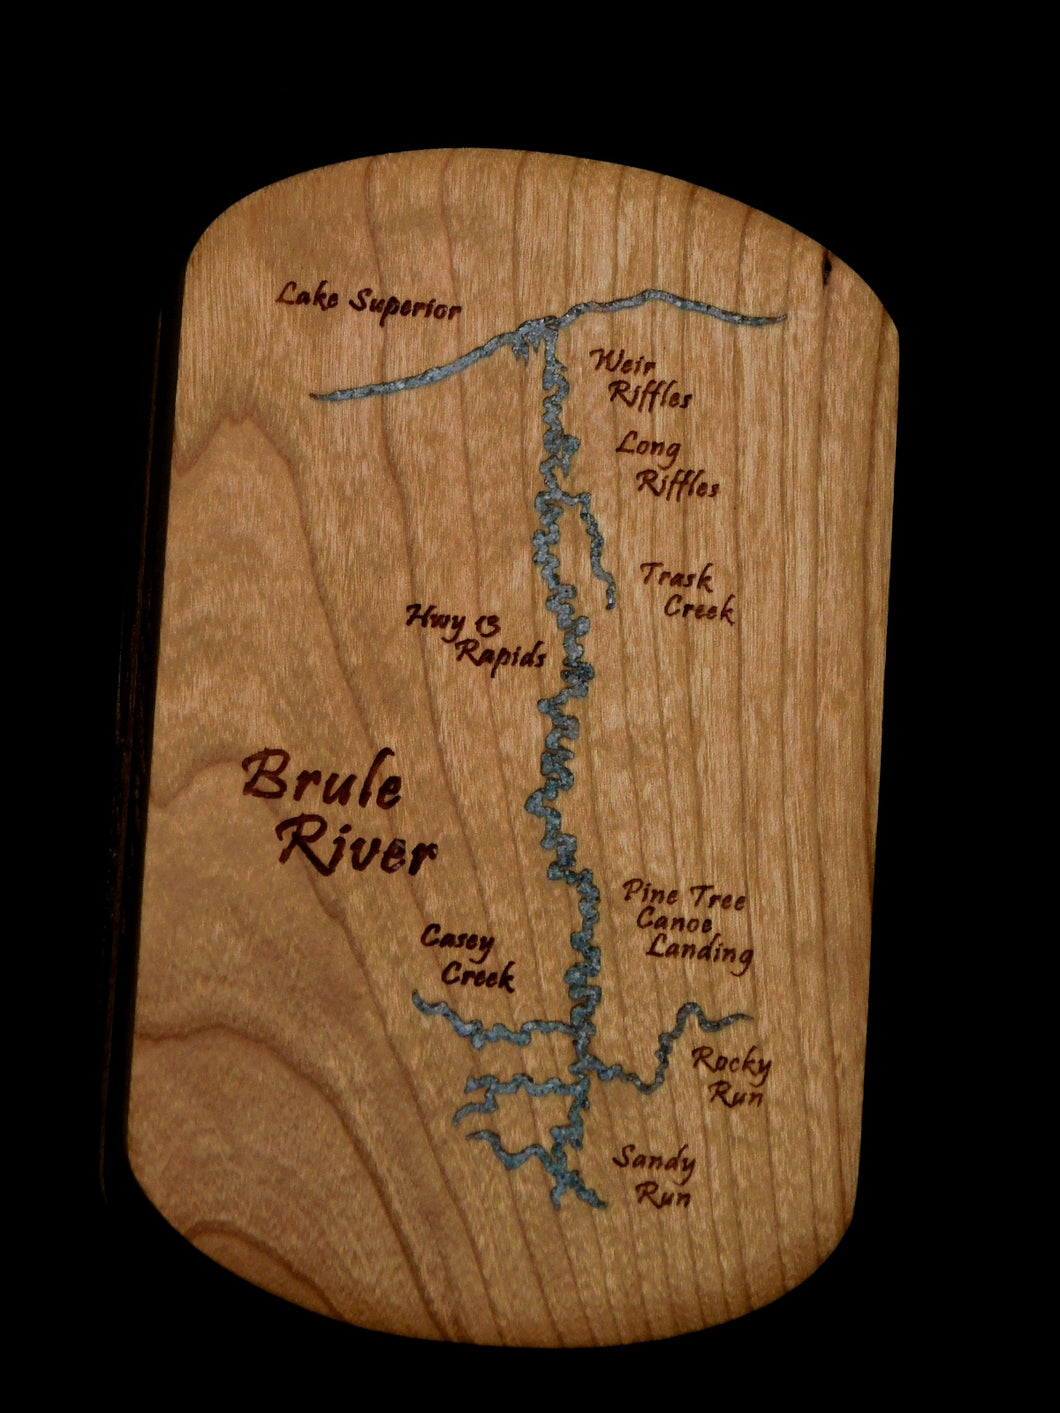 Brule River Wisconsin Fly Box